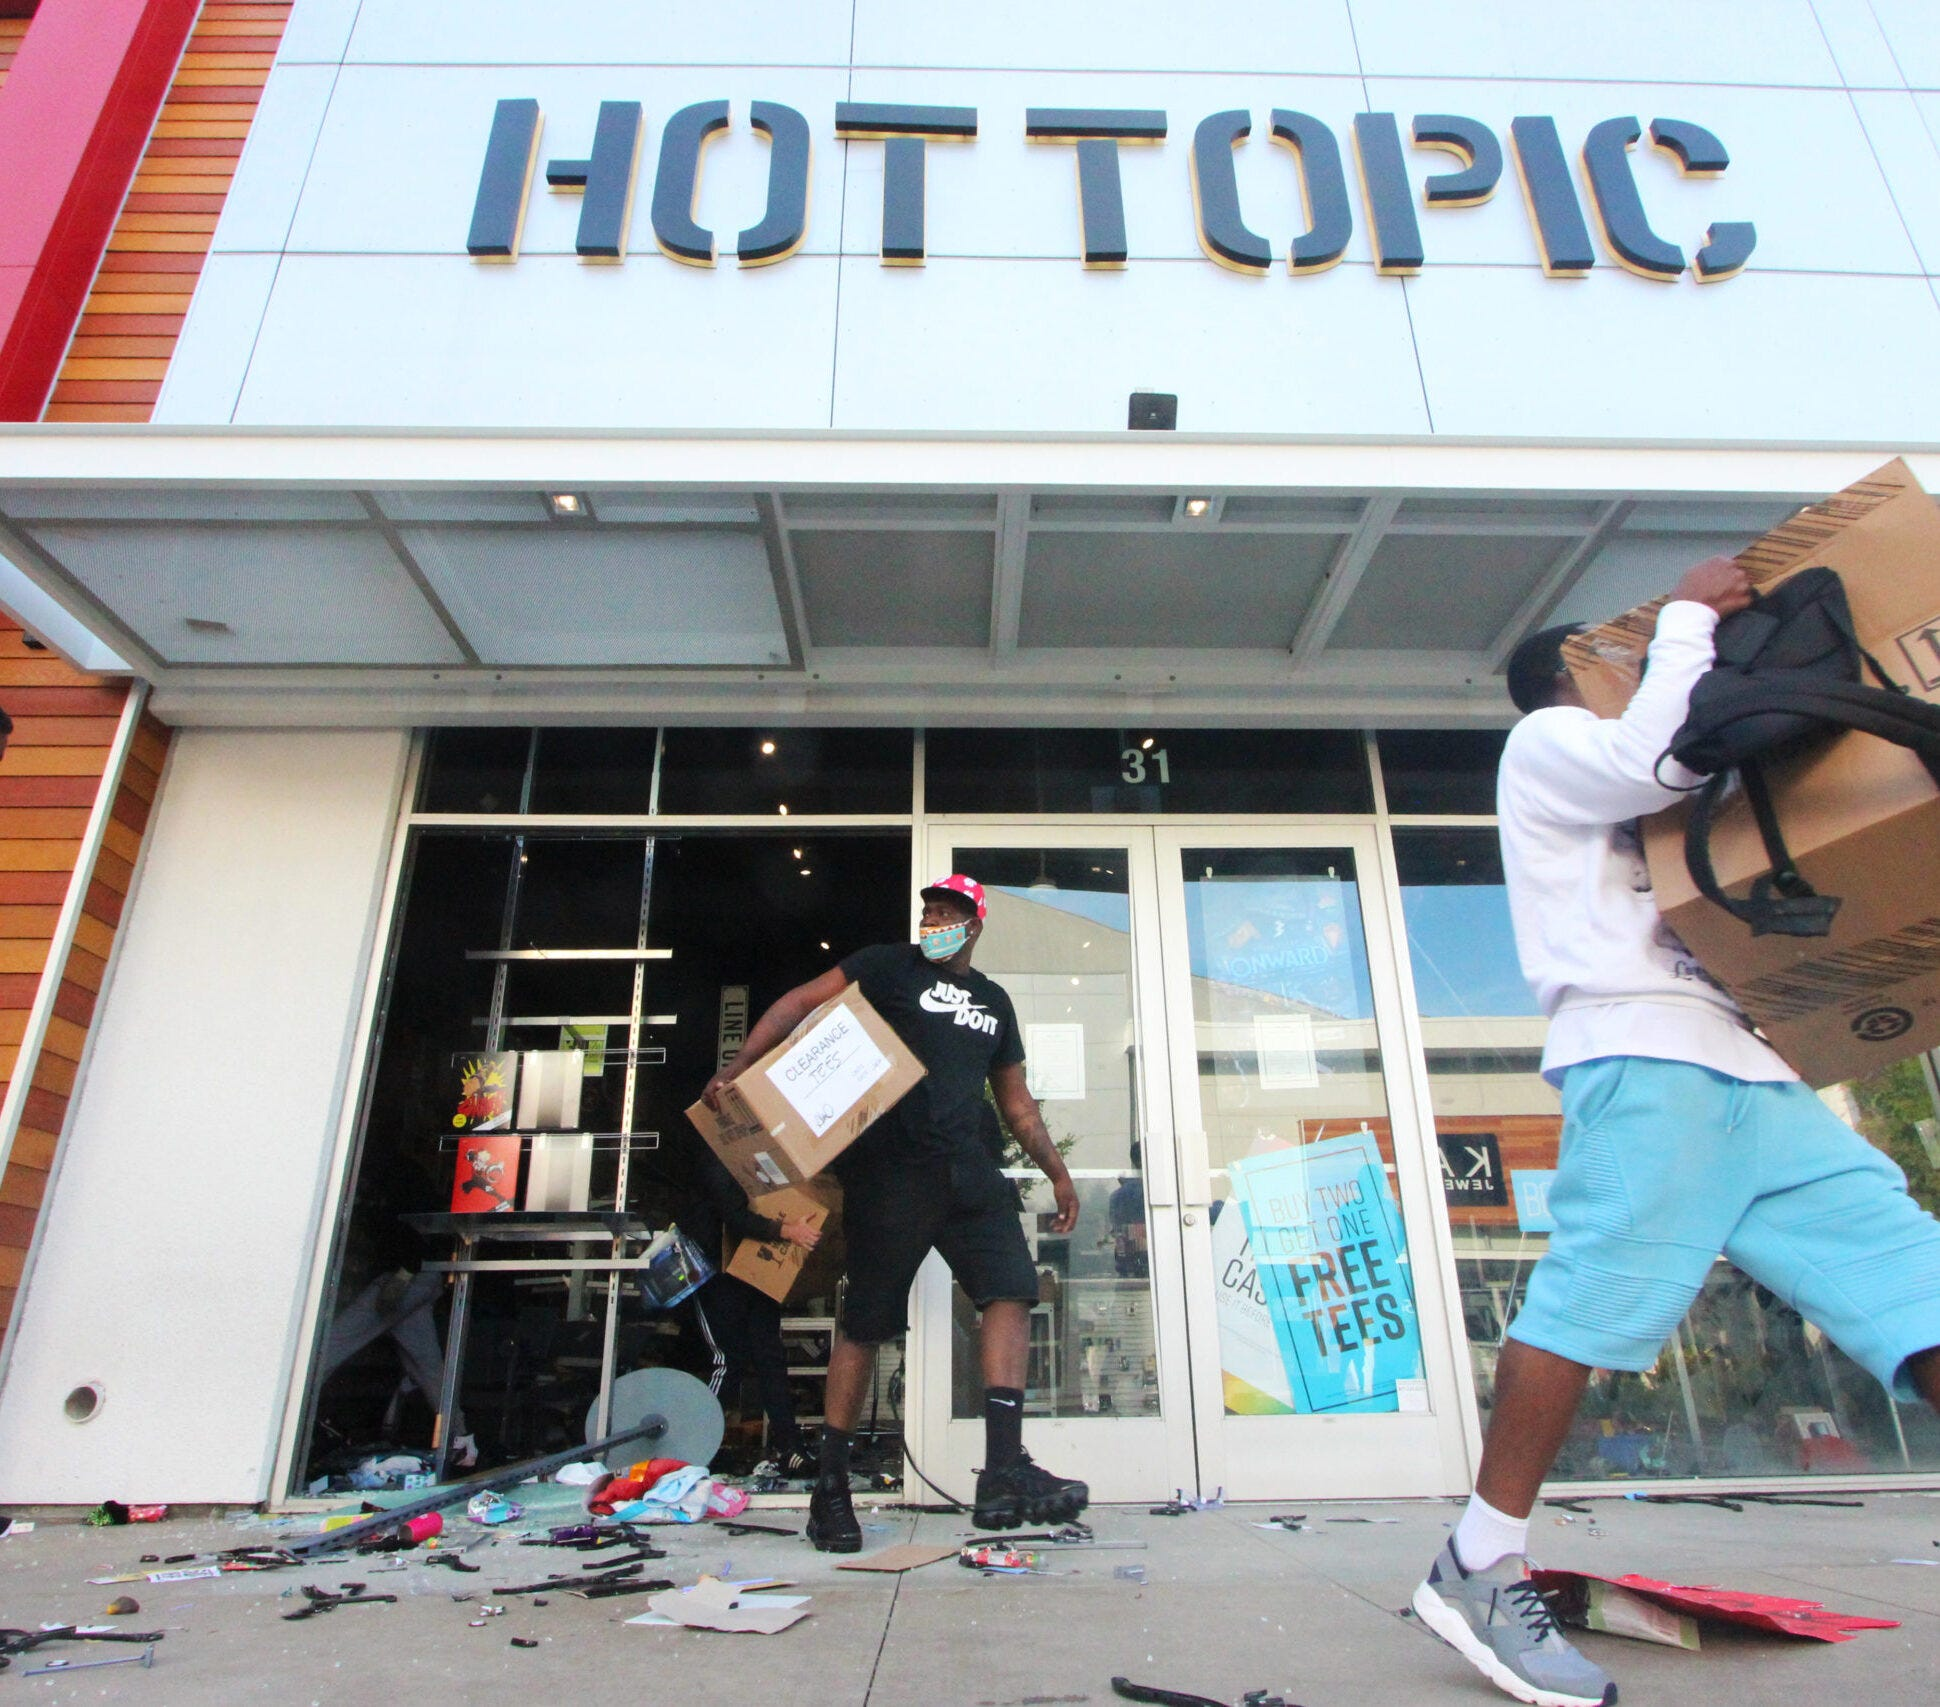 Is looting necessary to spark change during protests?